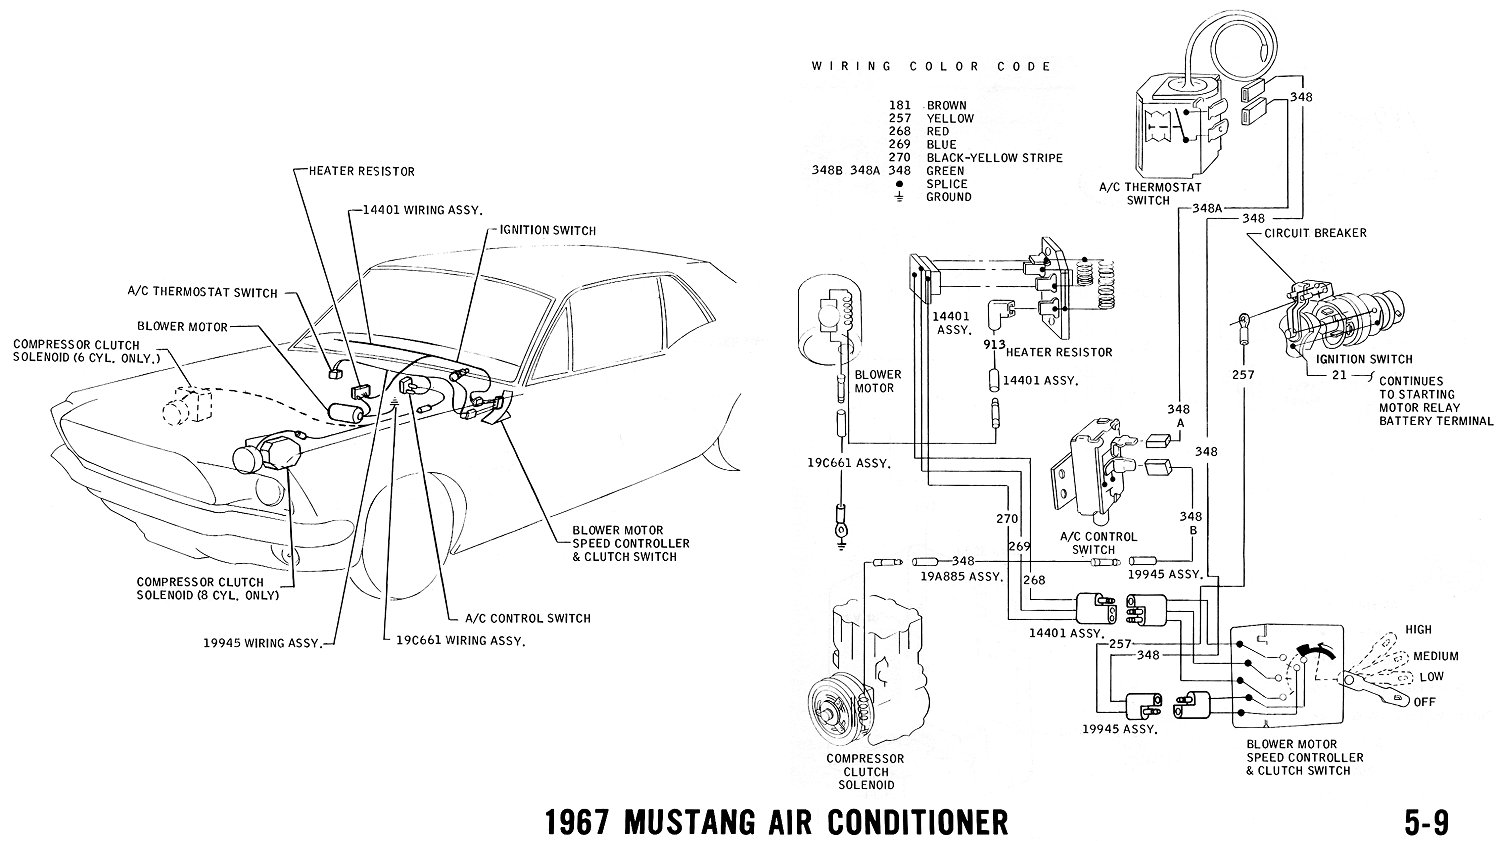 air horn wiring diagram switch with 1967 Mustang Wiring And Vacuum Diagrams on Wiring furthermore Dodge Caliber Wiring Diagram moreover 5cjy2 Need Car Fuse Box Diagrams 2008 Passat Please Help moreover 1966 Mustang Wiring Diagrams also RepairGuideContent.